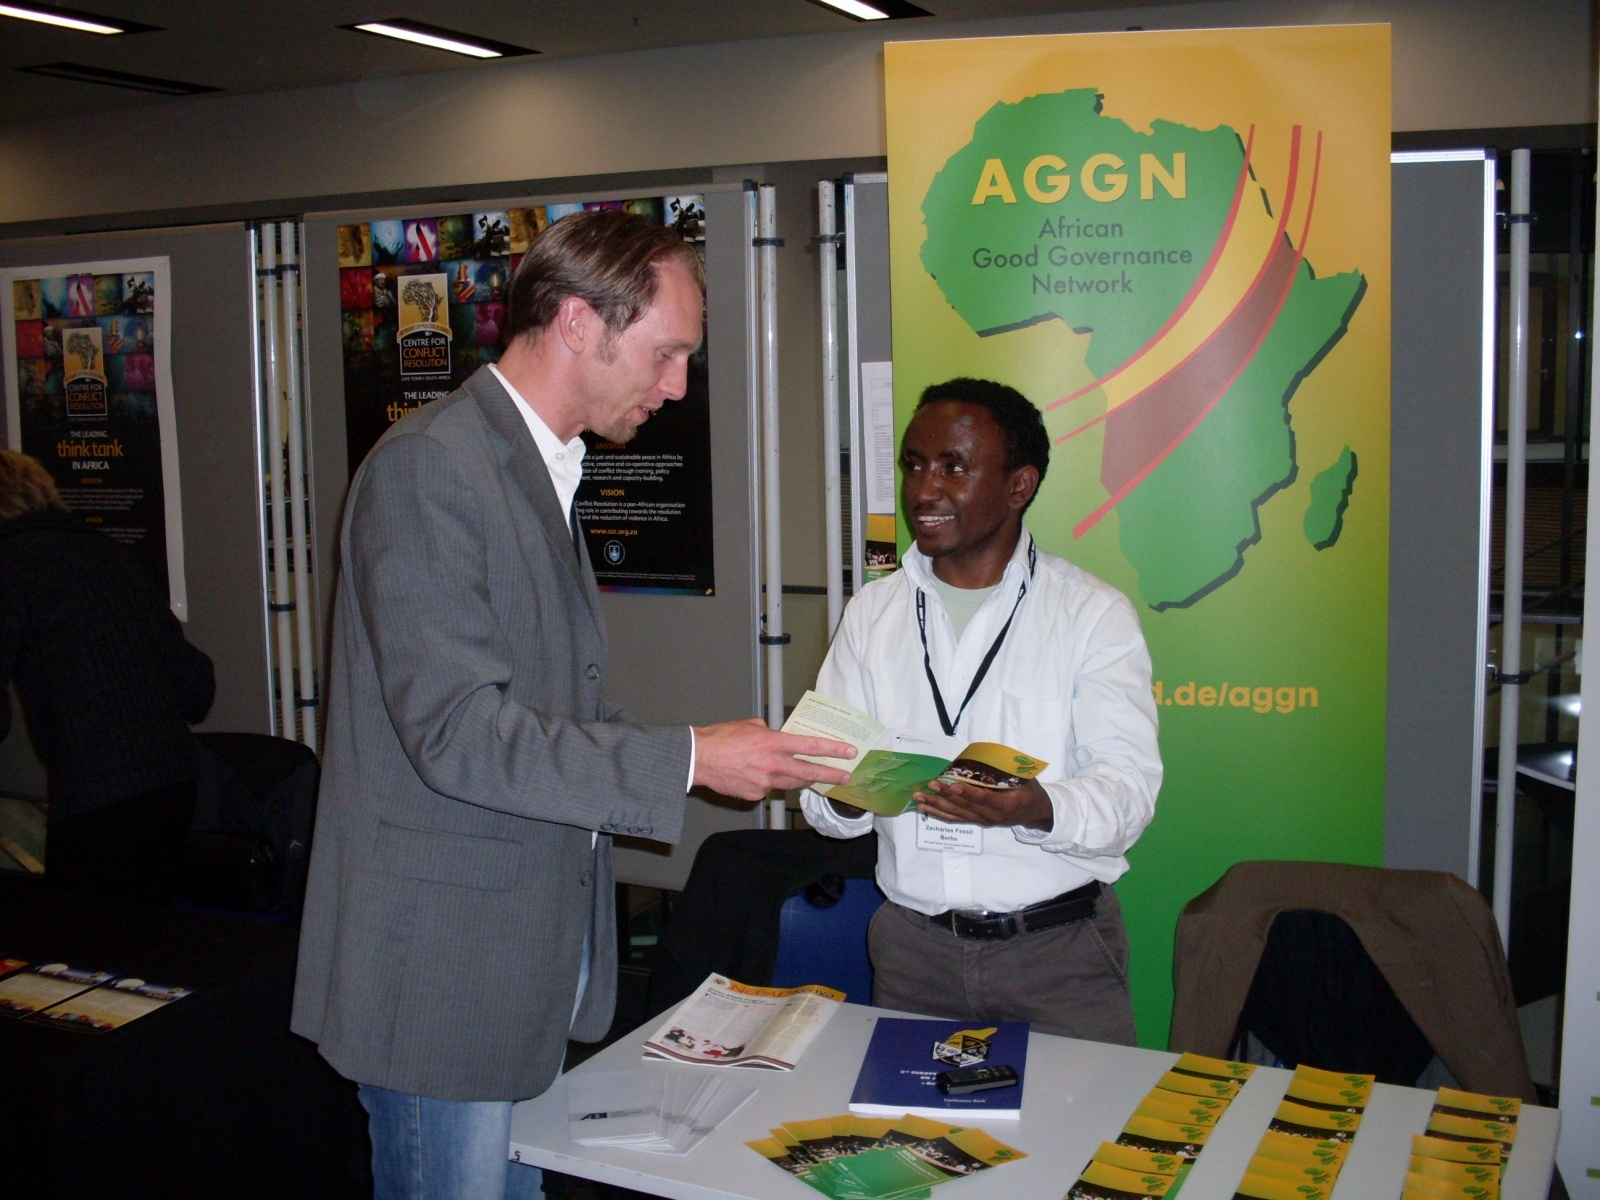 AGGN information stand at a scientific conference